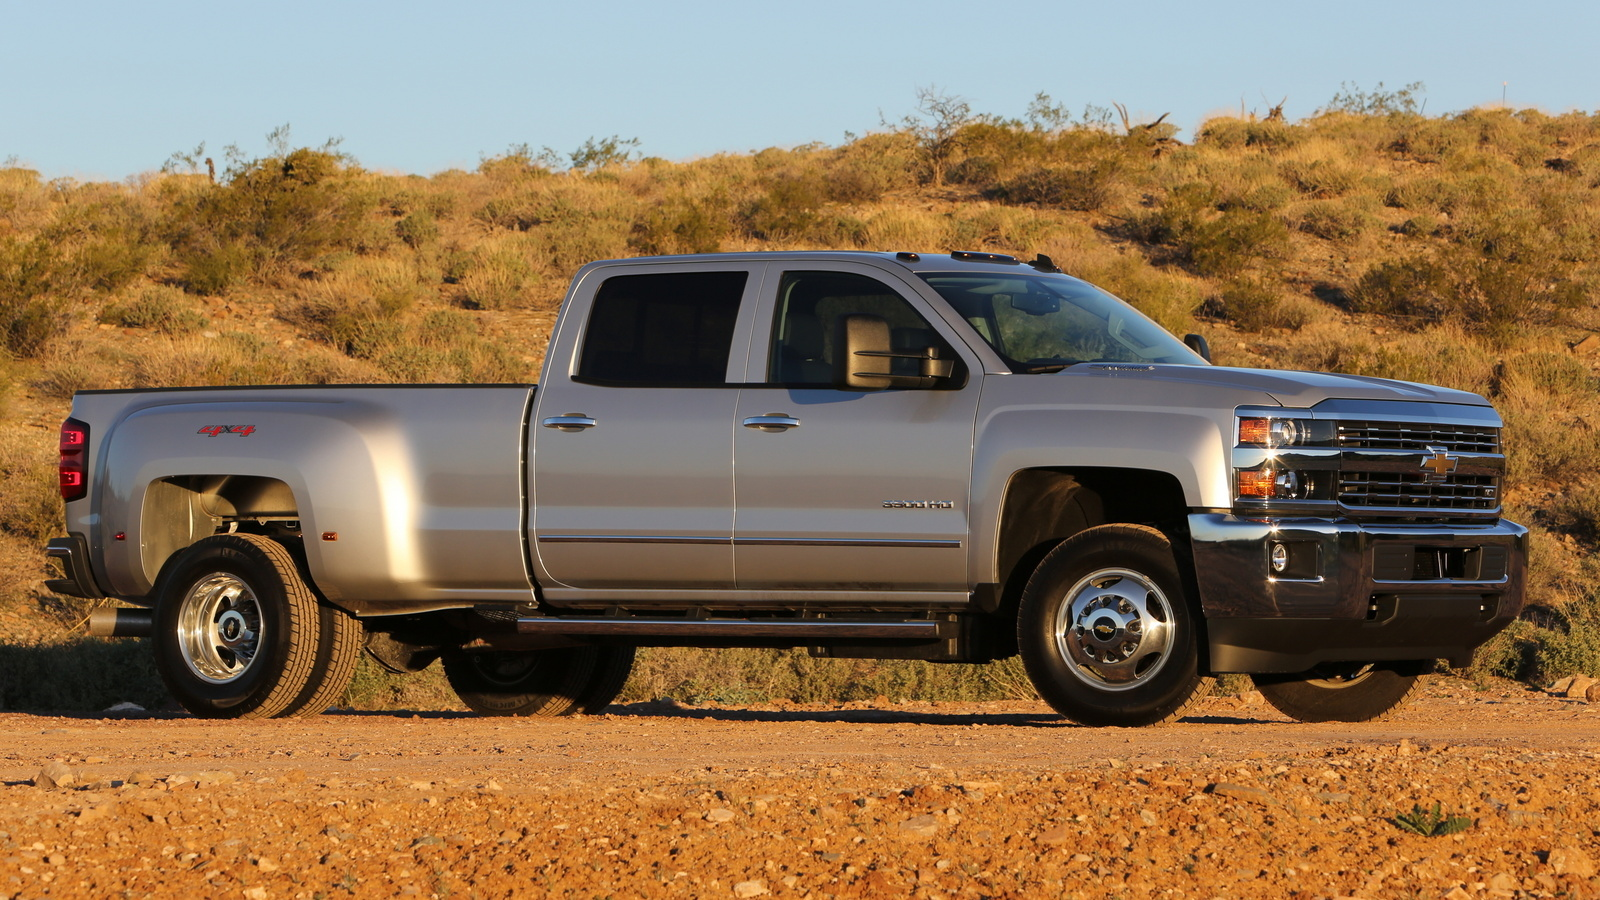 2014 Chevy Silverado Used